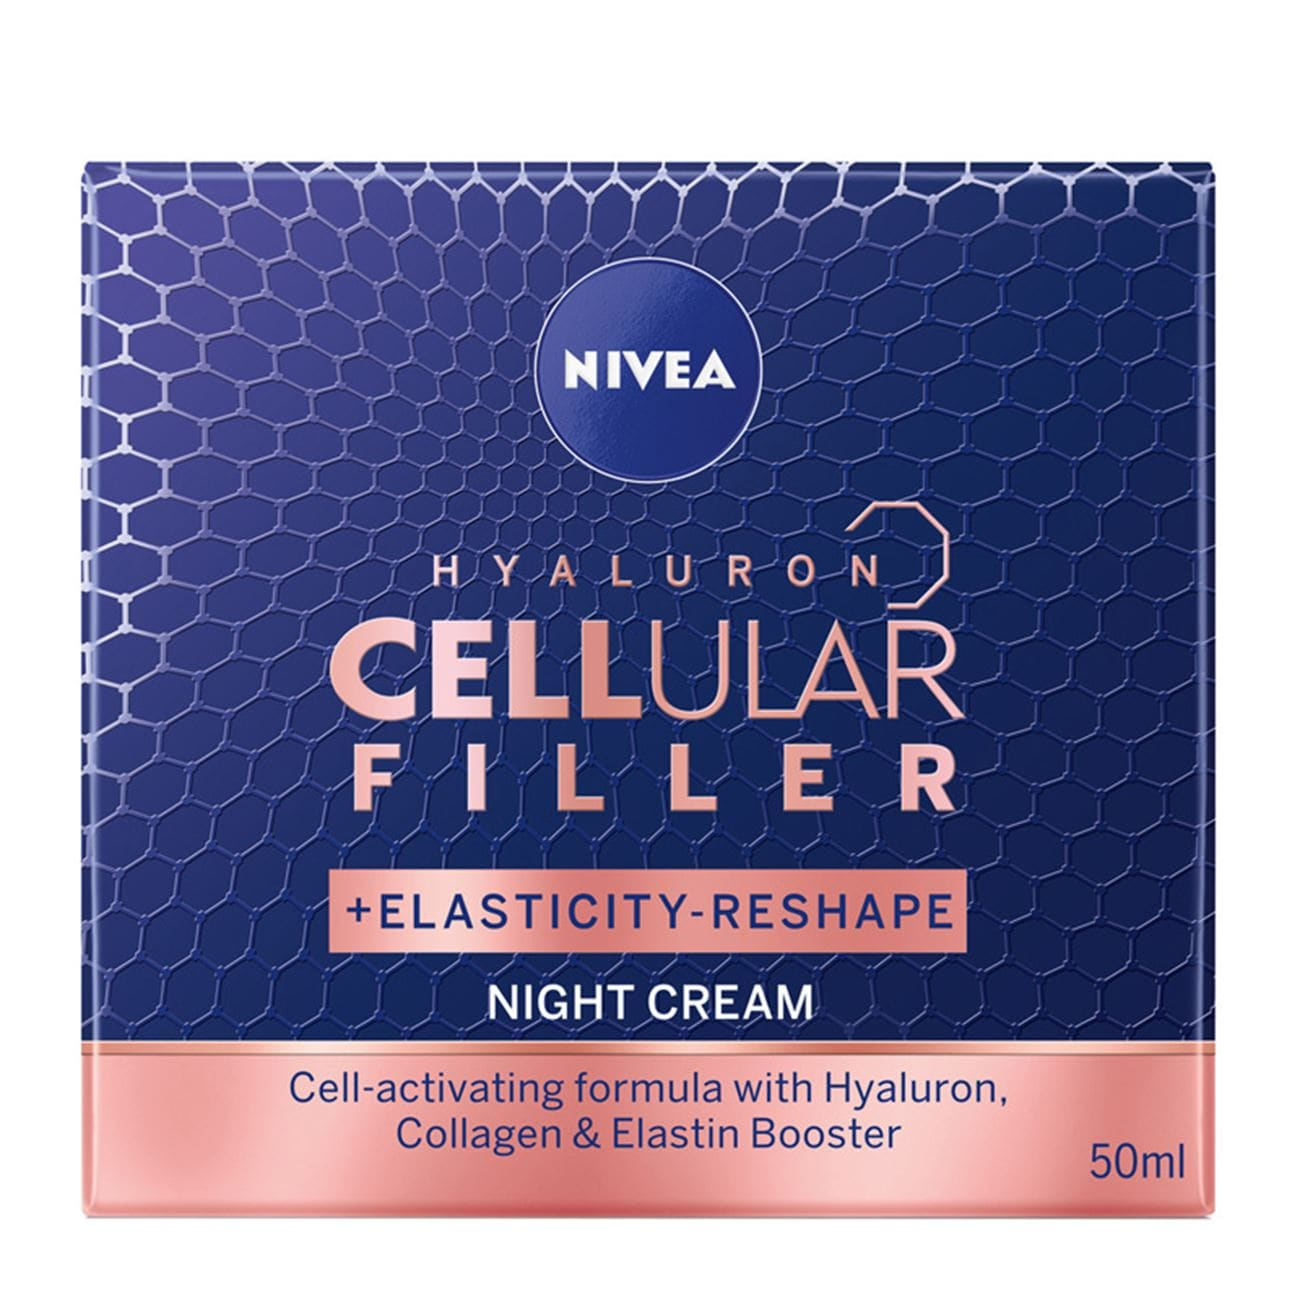 Hyaluron Cellular Filler Night Cream+ Elasticity-Reshape